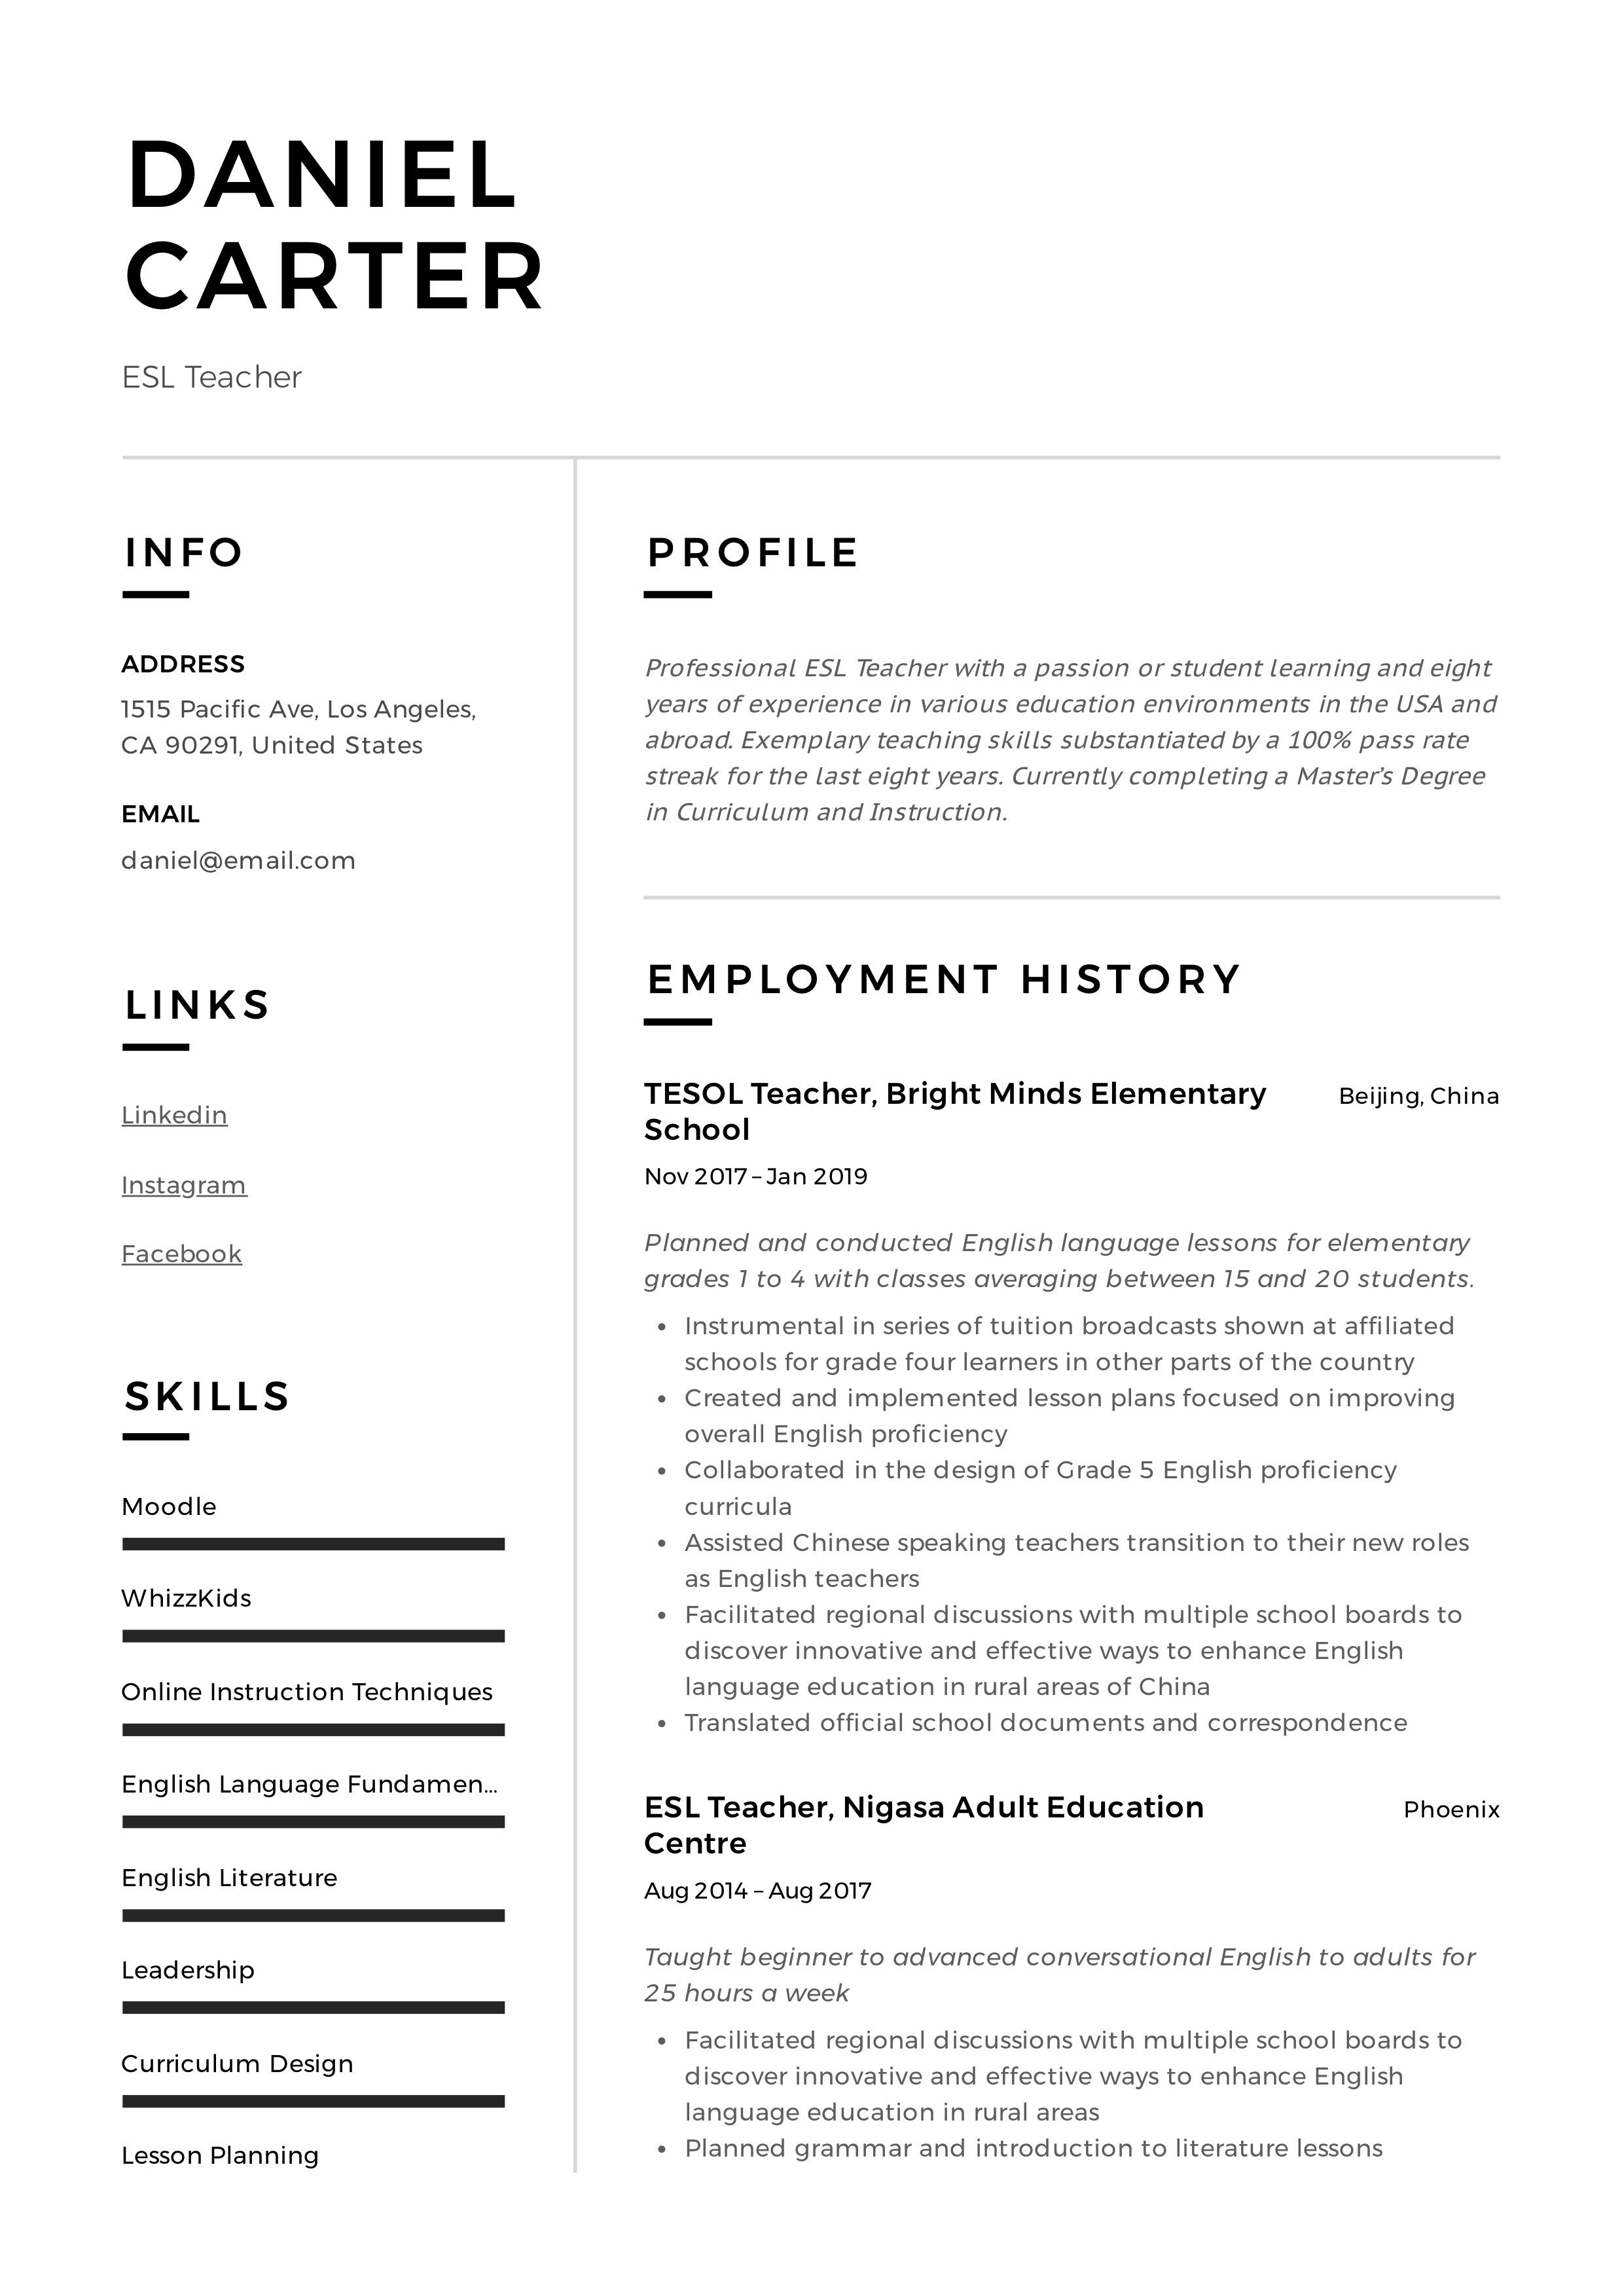 ESL Teacher Resume & Writing Guide +12 Free Templates in